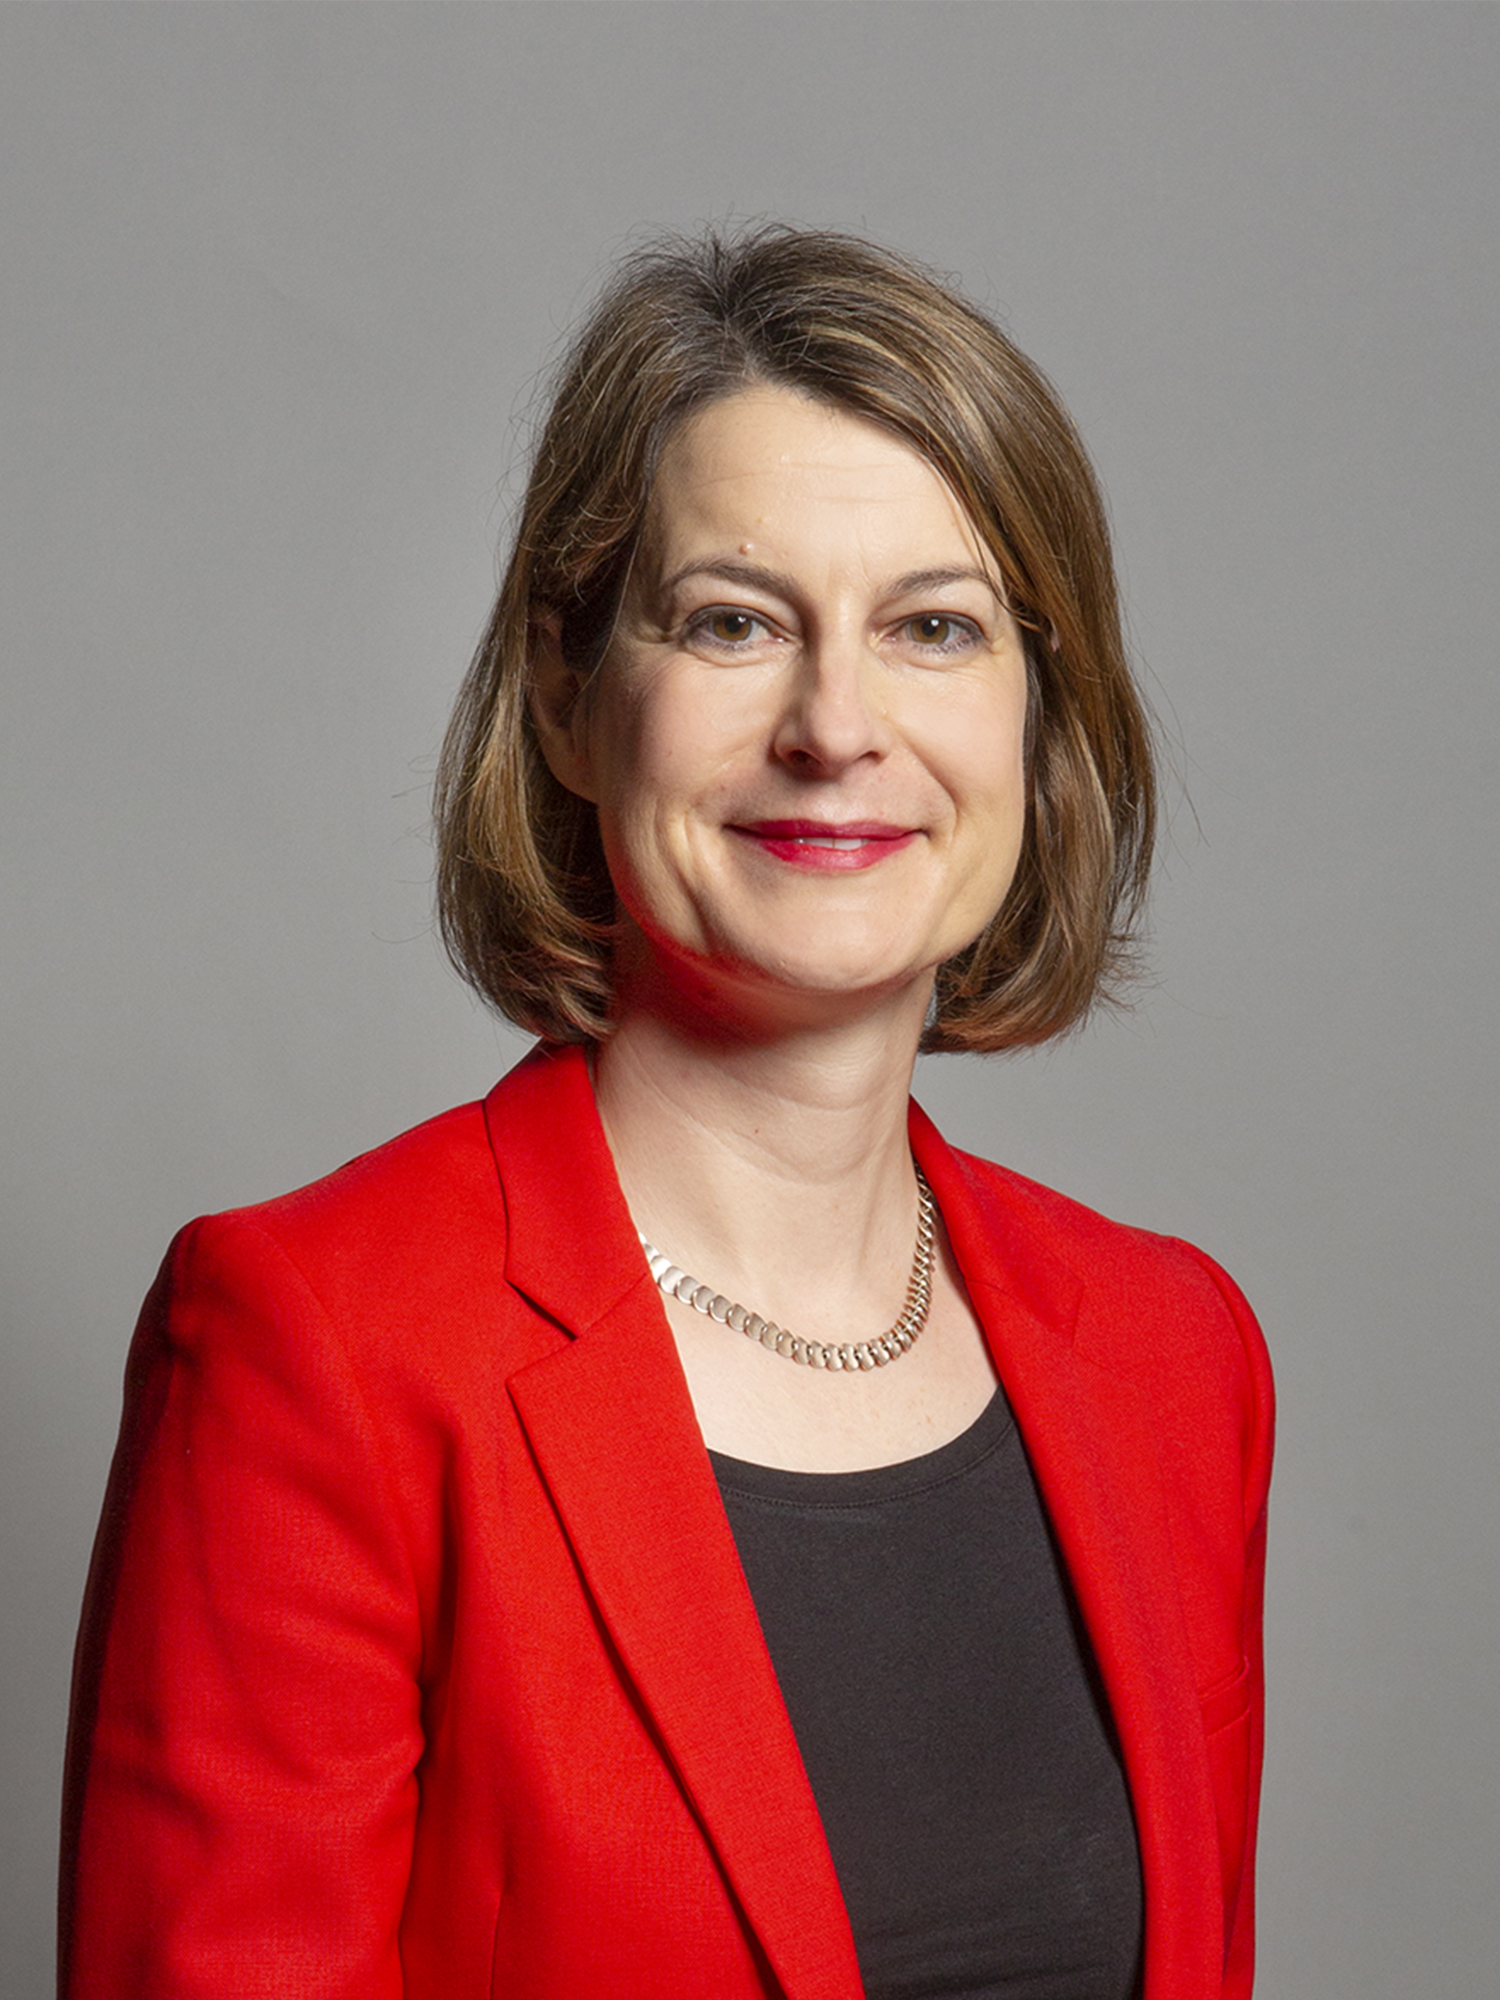 Official_portrait_of_Helen_Hayes_MP_crop_2